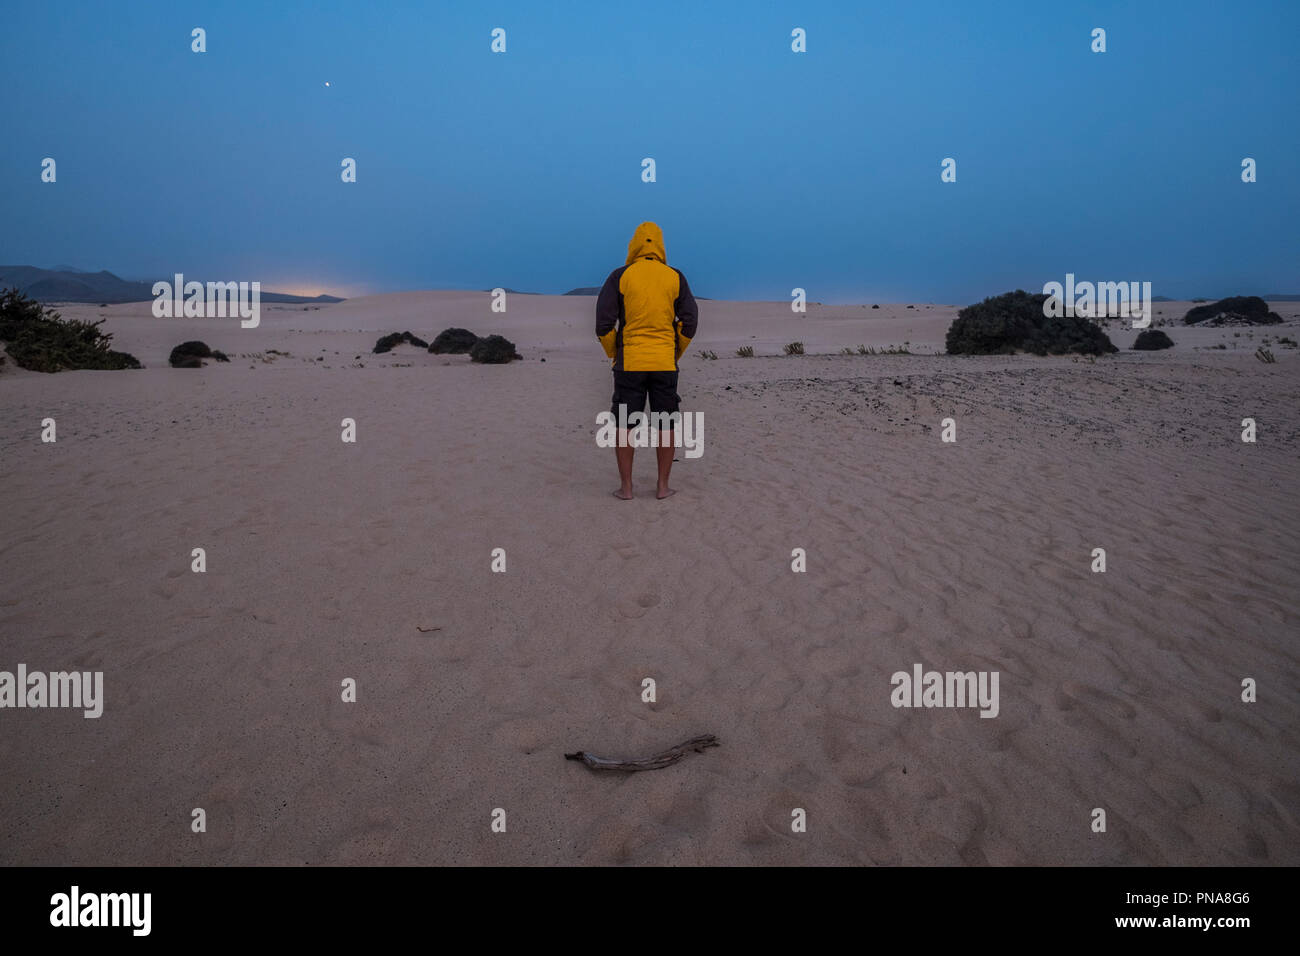 single man with yello jacket wait and stand in the middle of the desert of corralejo fuerteventura by night in the evening. cold and enjoying the natu - Stock Image